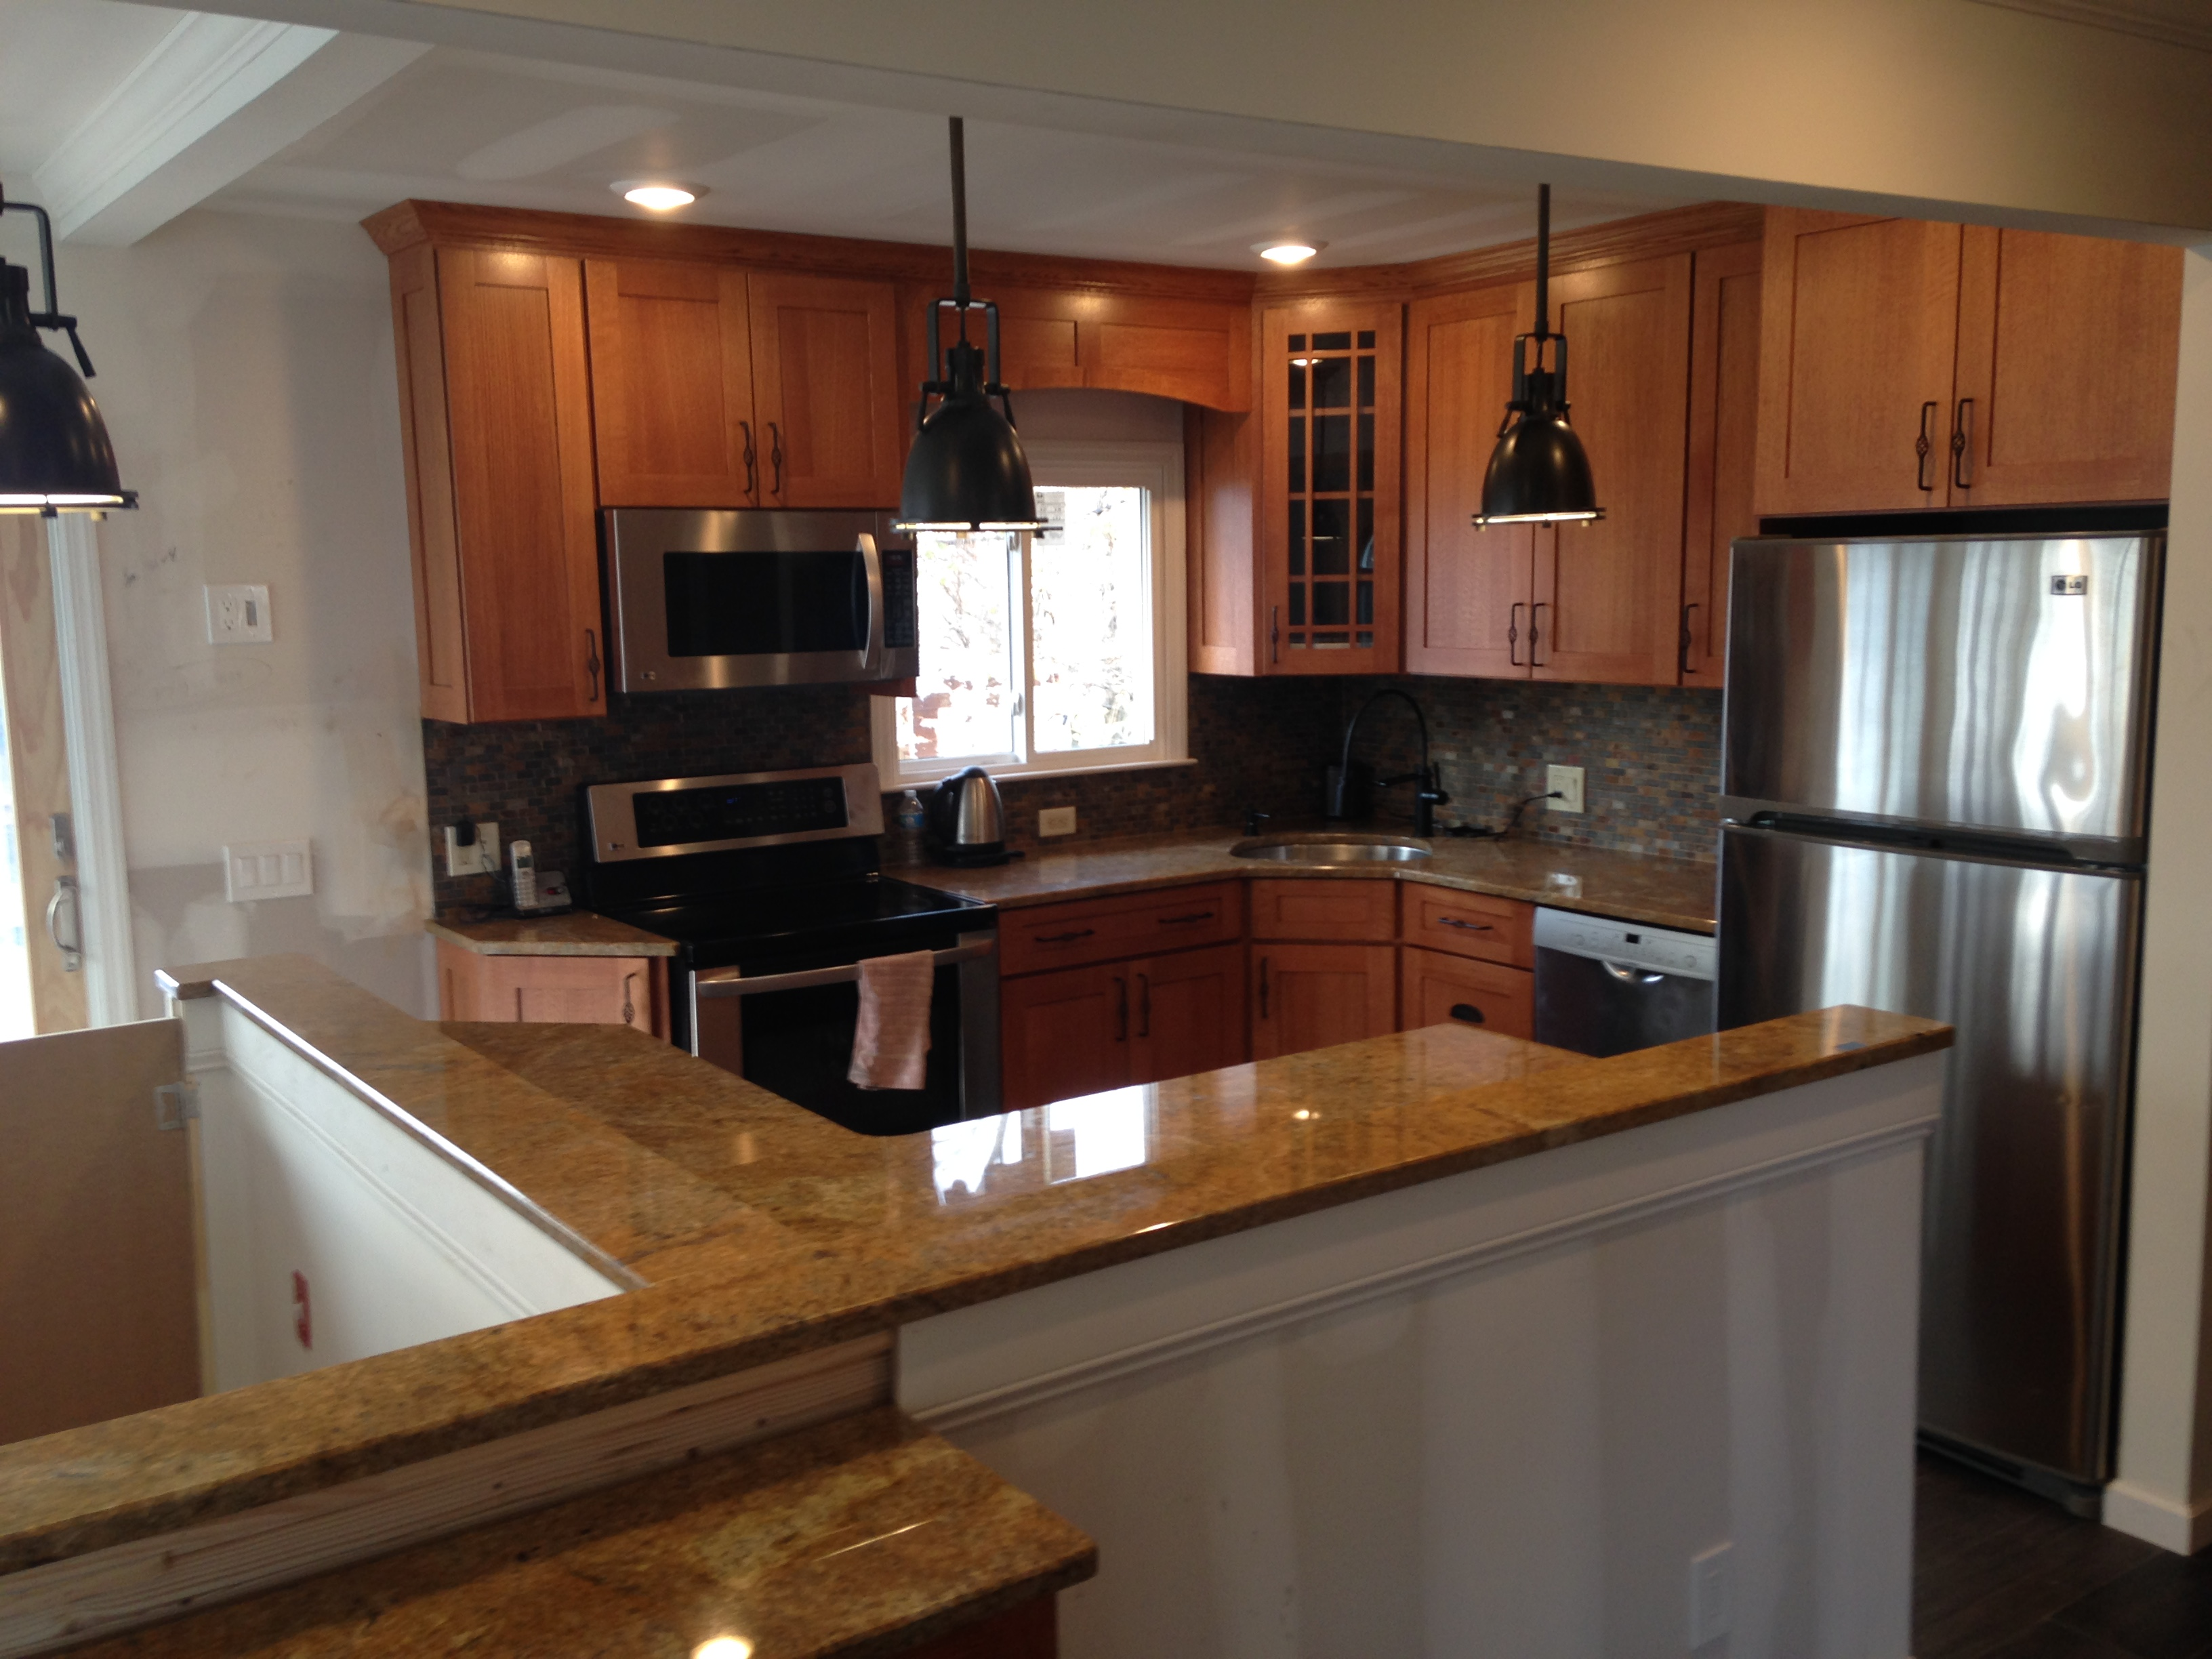 Finished Kitchens - Major Homes